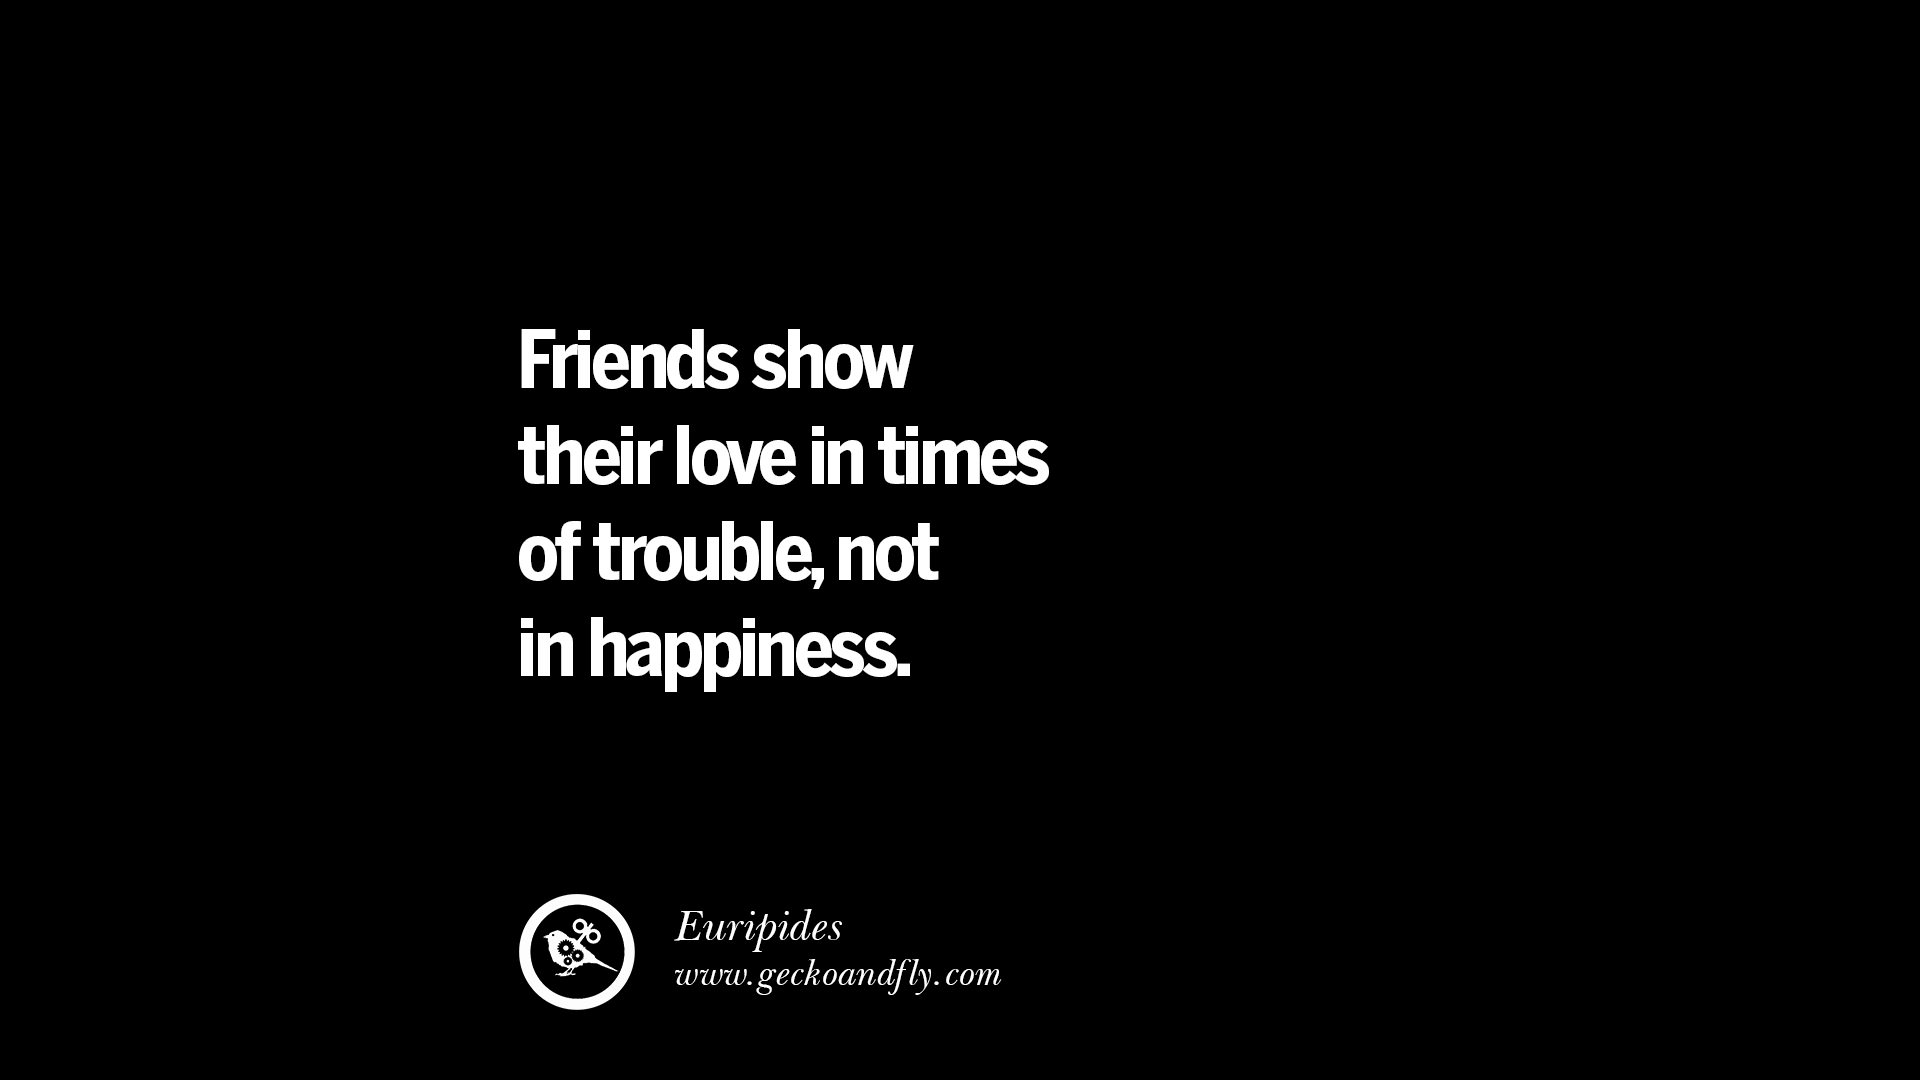 Quotes About Friendship And Love 20 Amazing Quotes About Friendship Love And Friends  Geckoandfly 2018